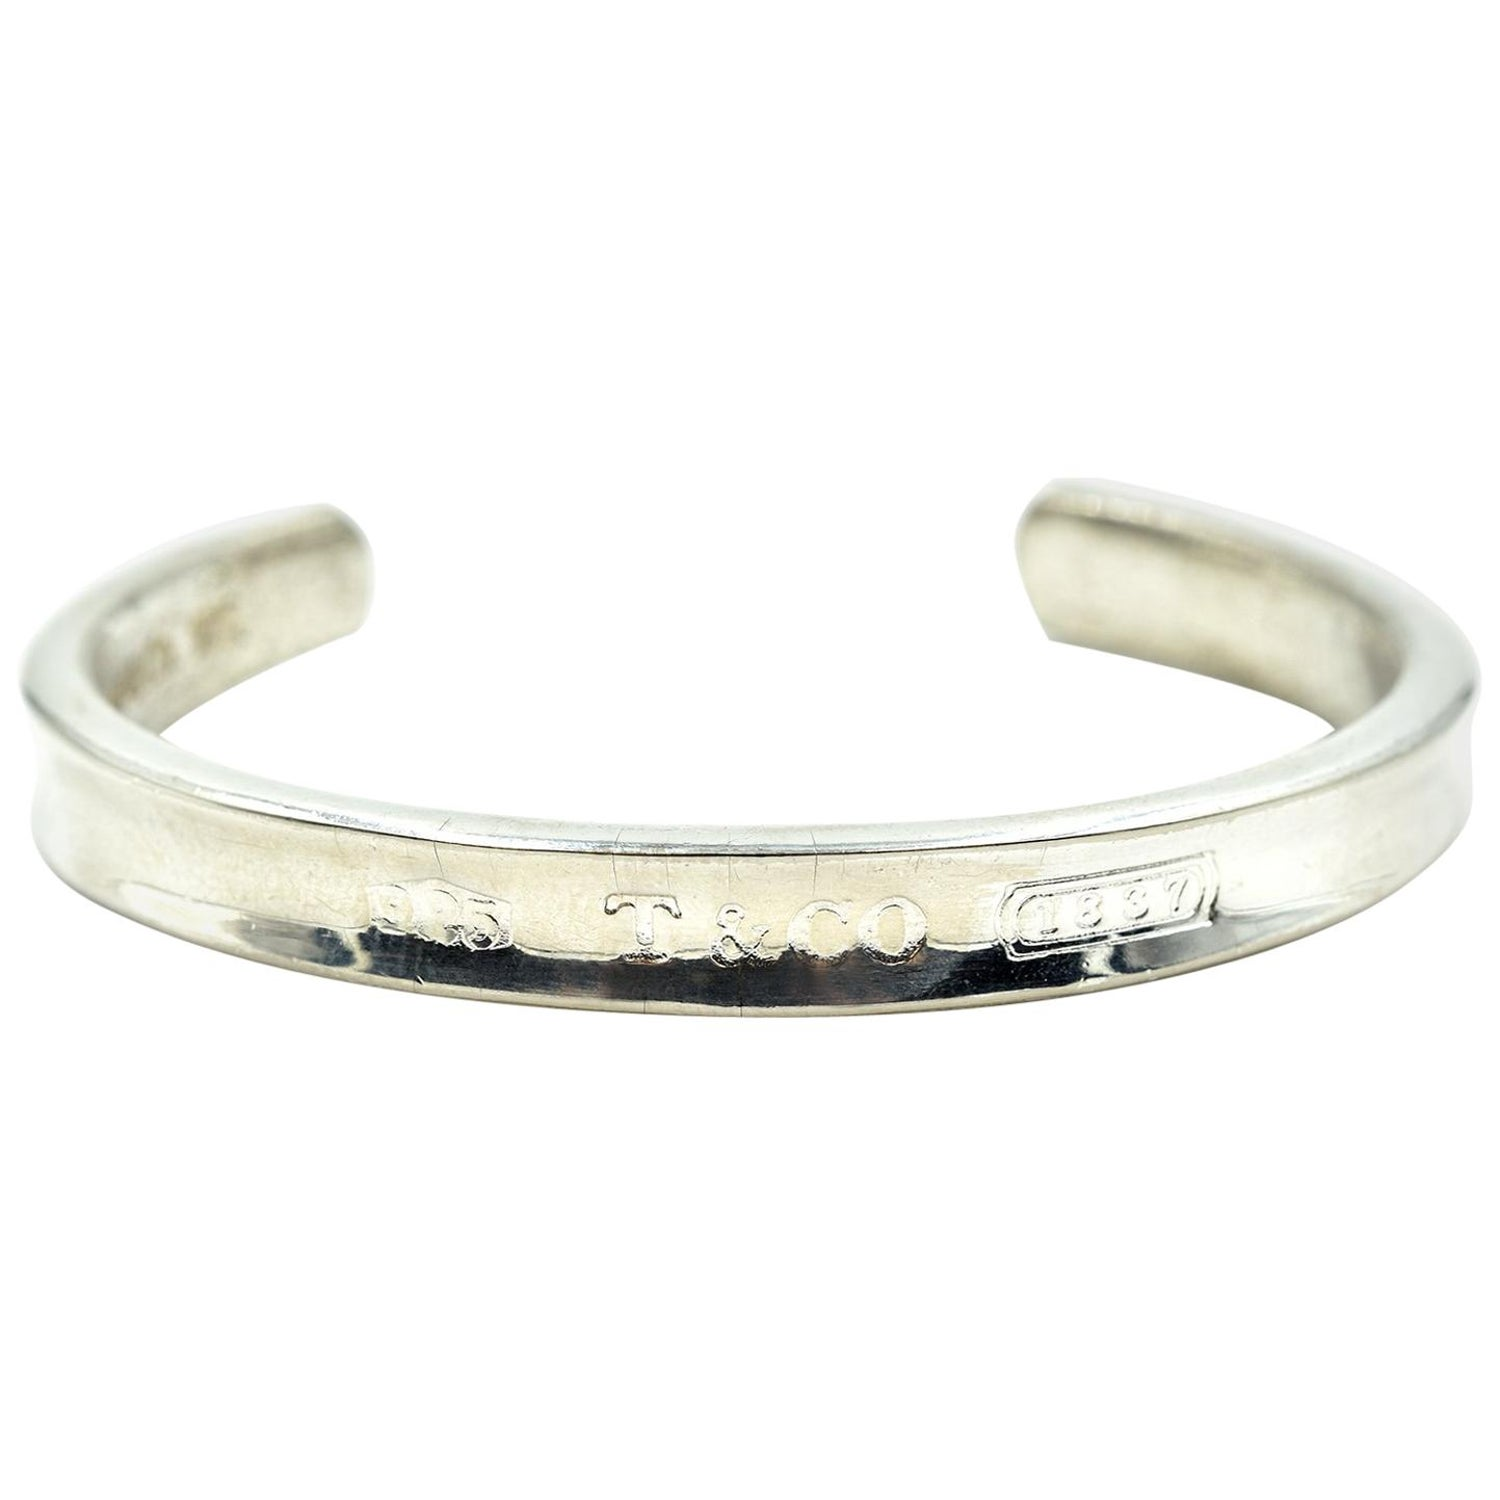 2528ba8f7 Tiffany and Co. Sterling Silver 1837 Cuff Bracelet at 1stdibs